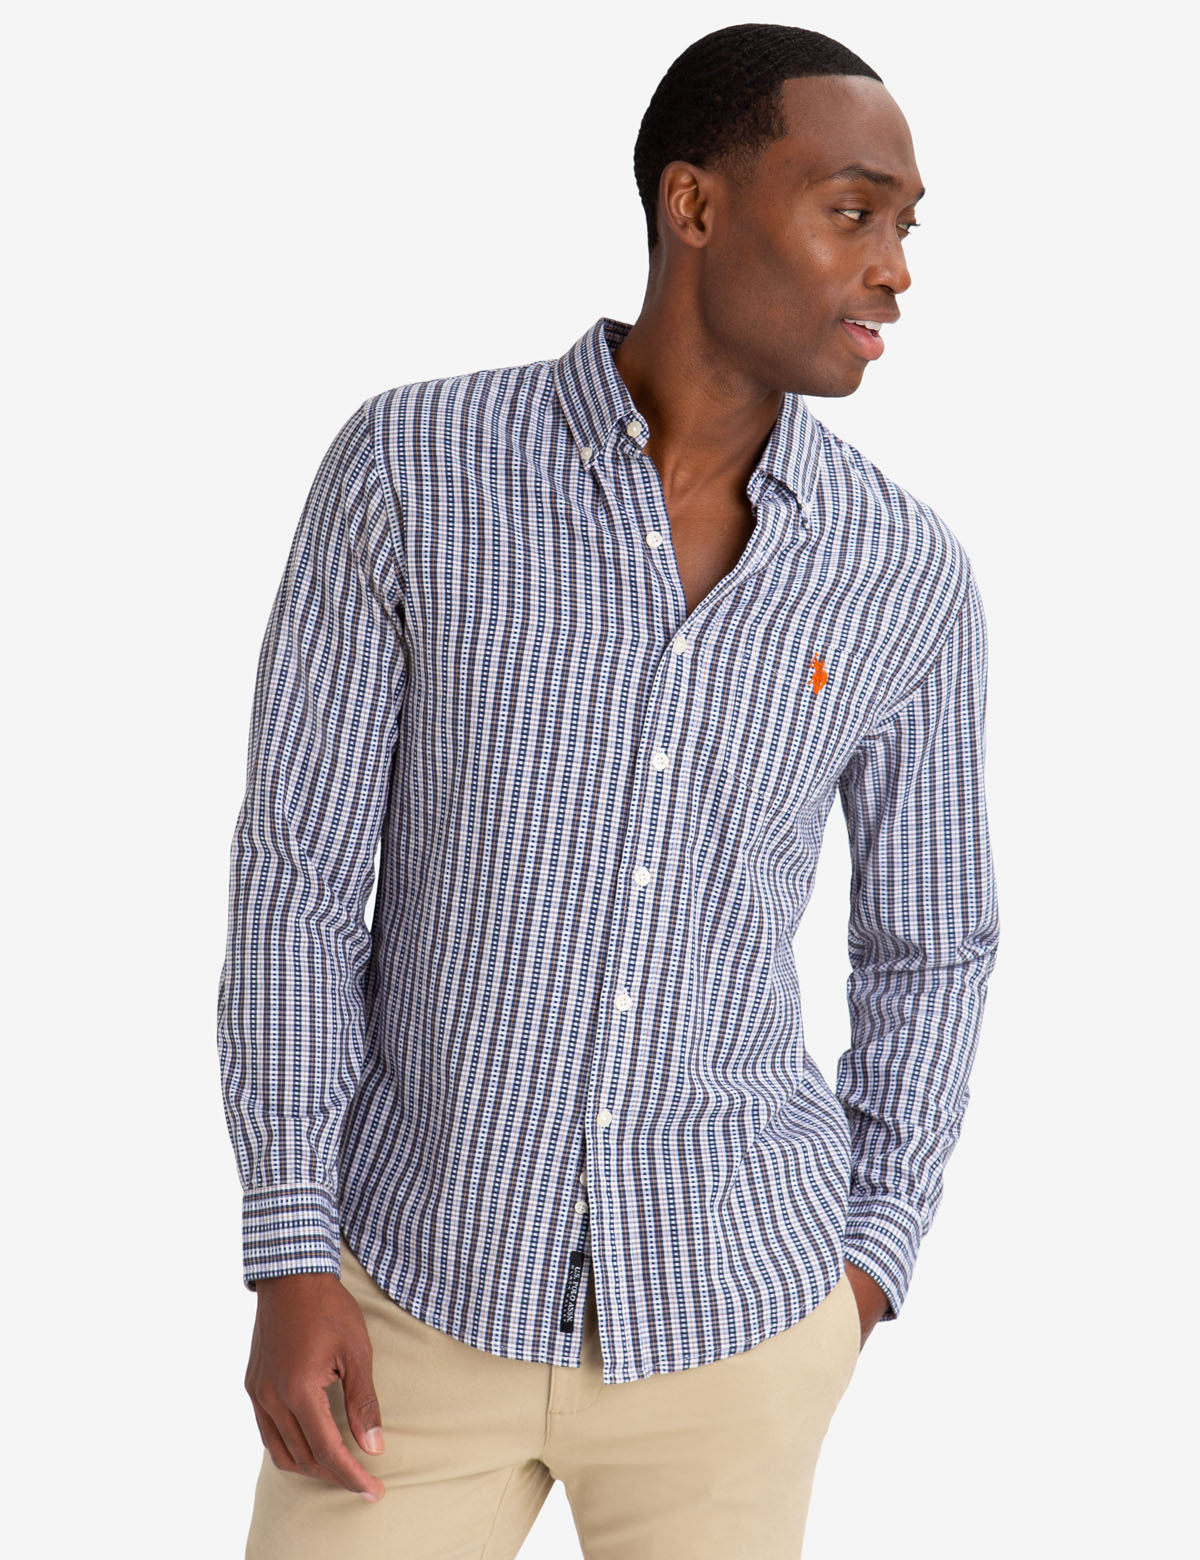 BLACK MALLET SLIM FIT PLAID DOBBY SHIRT